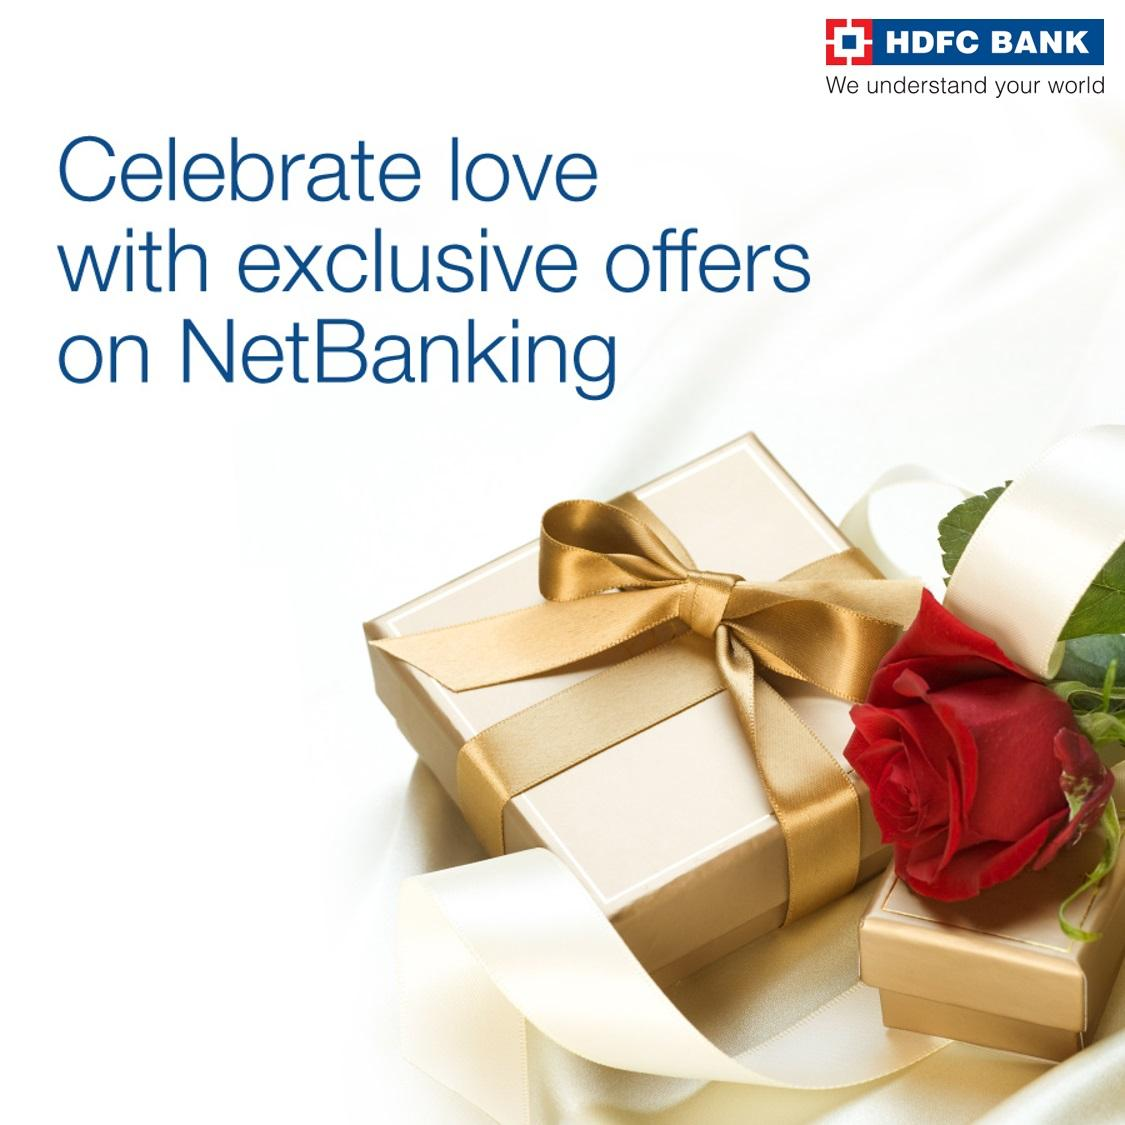 Make #ValentinesDay truly special with #NetBanking offers on leading brands. For offers click  http:// bit.ly/HDFCValentine  &nbsp;  <br>http://pic.twitter.com/J5ll2BwnCG